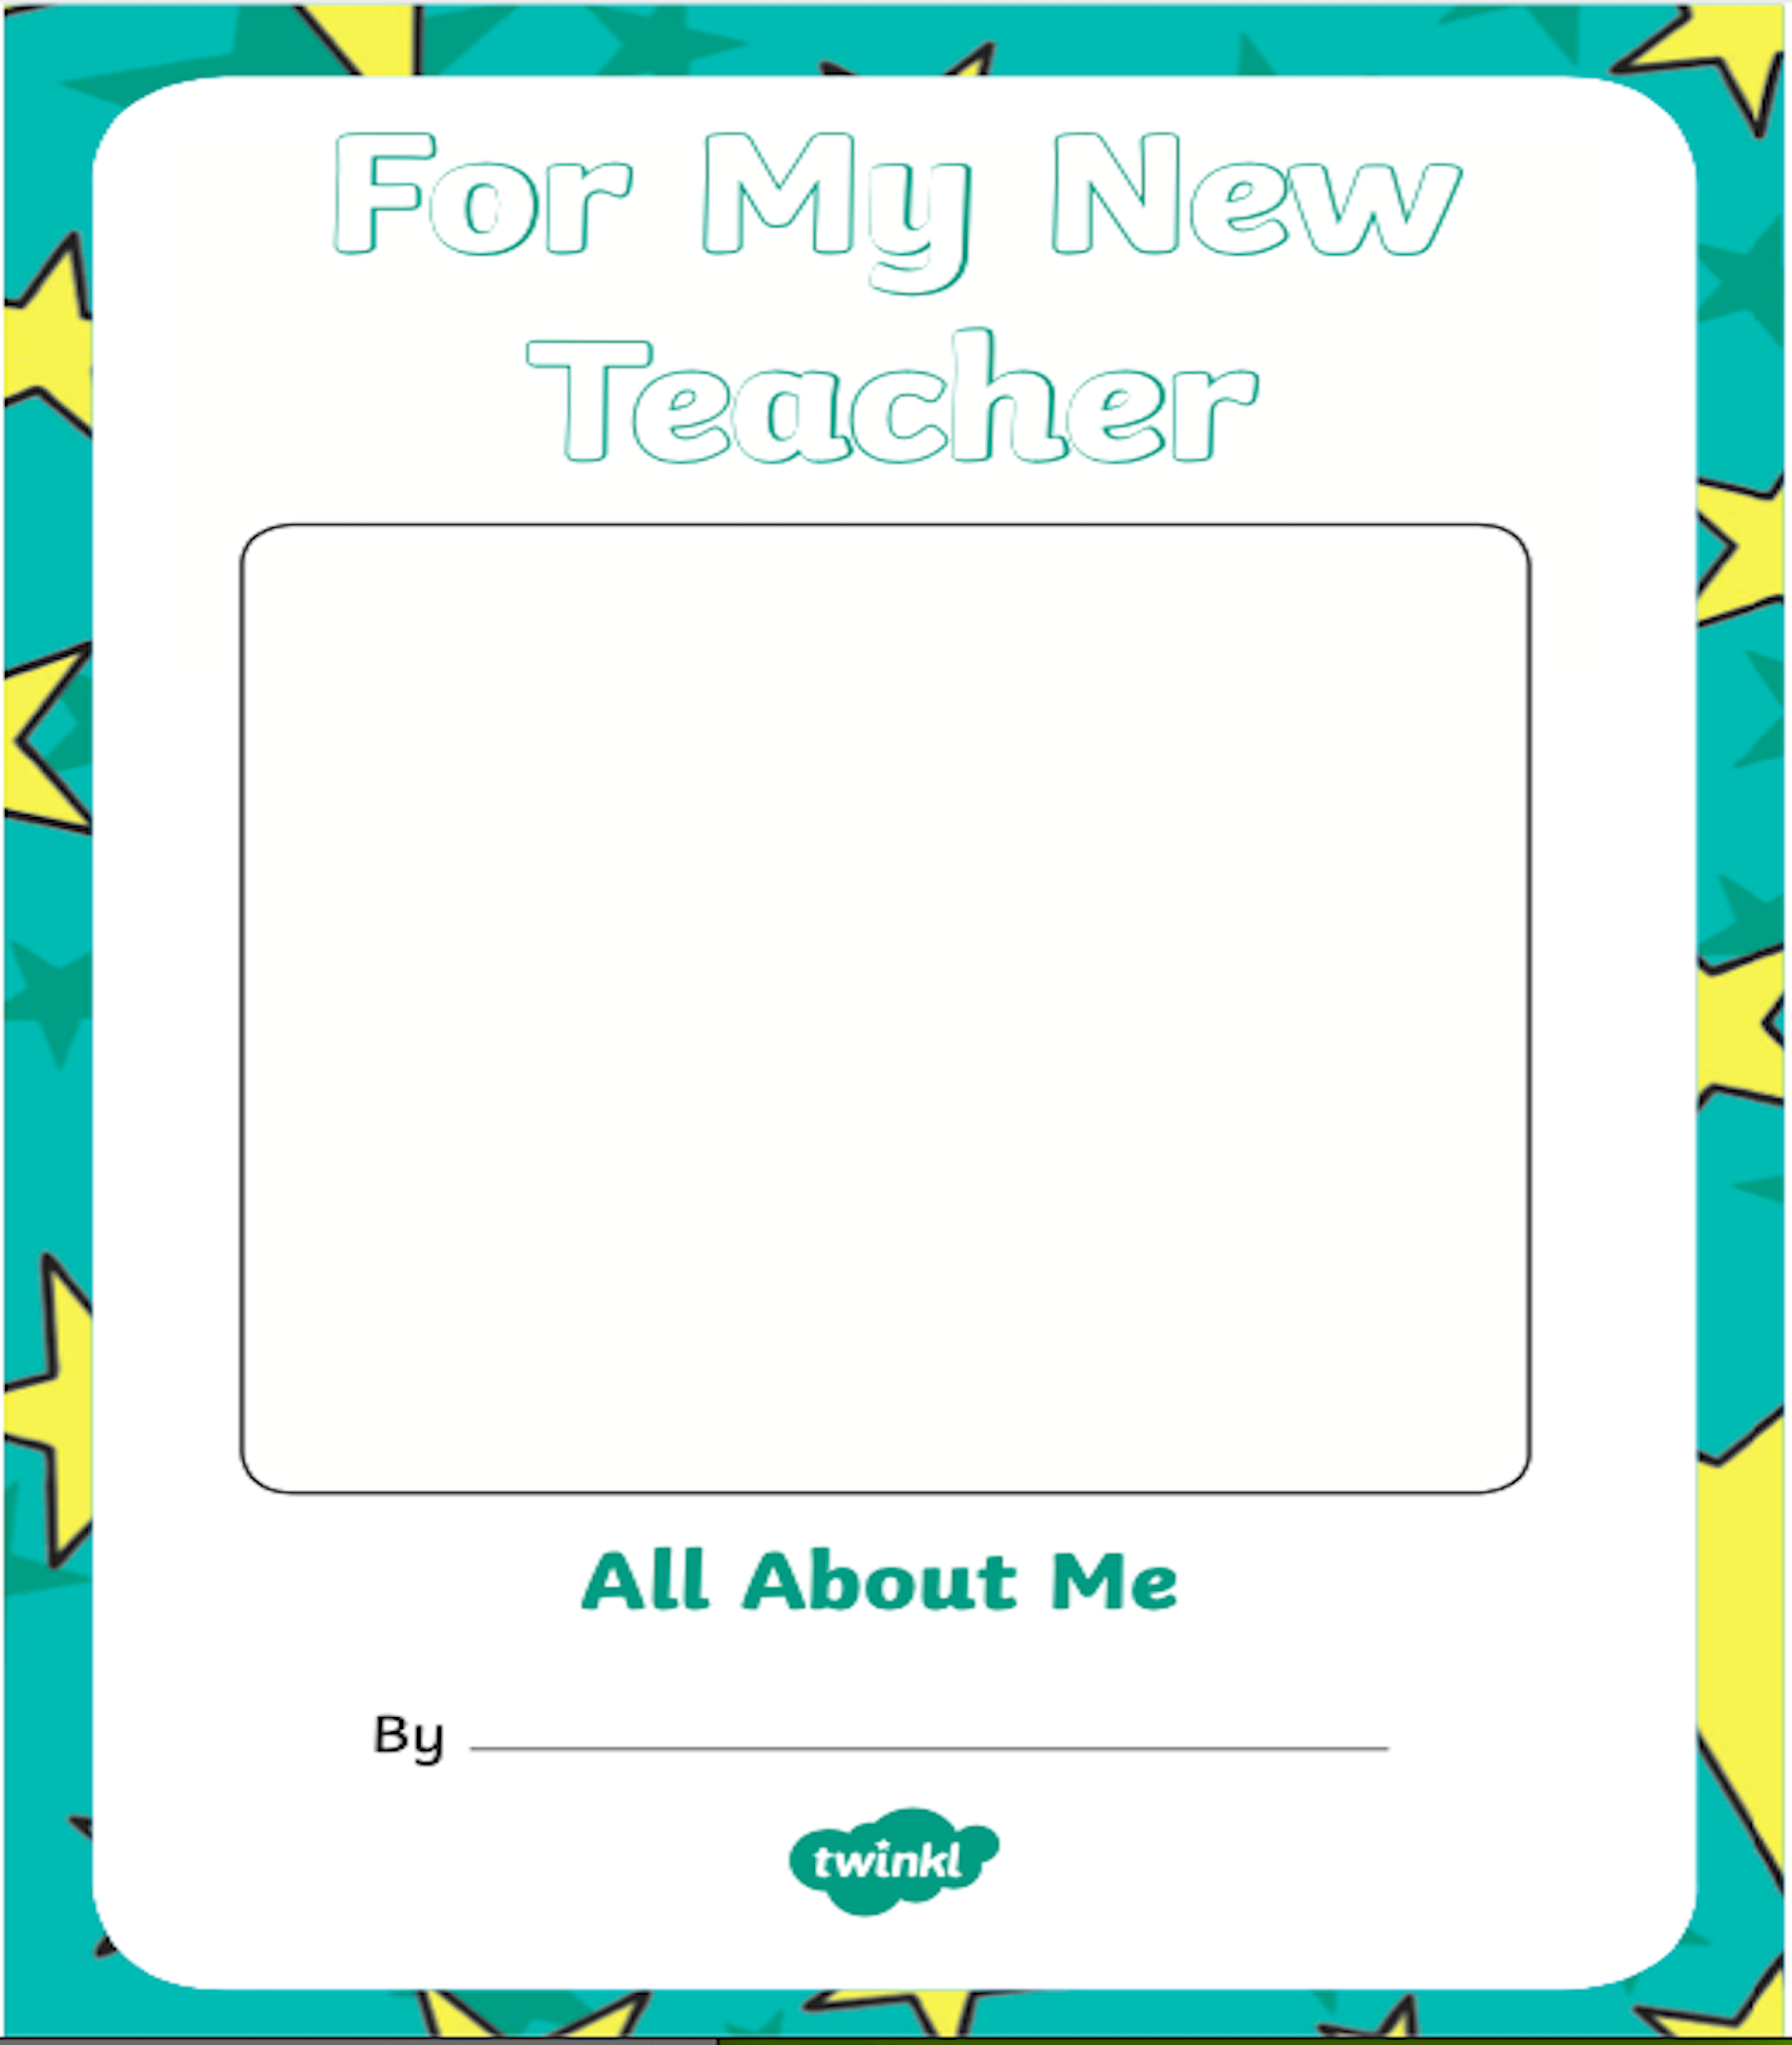 For My New Teacher